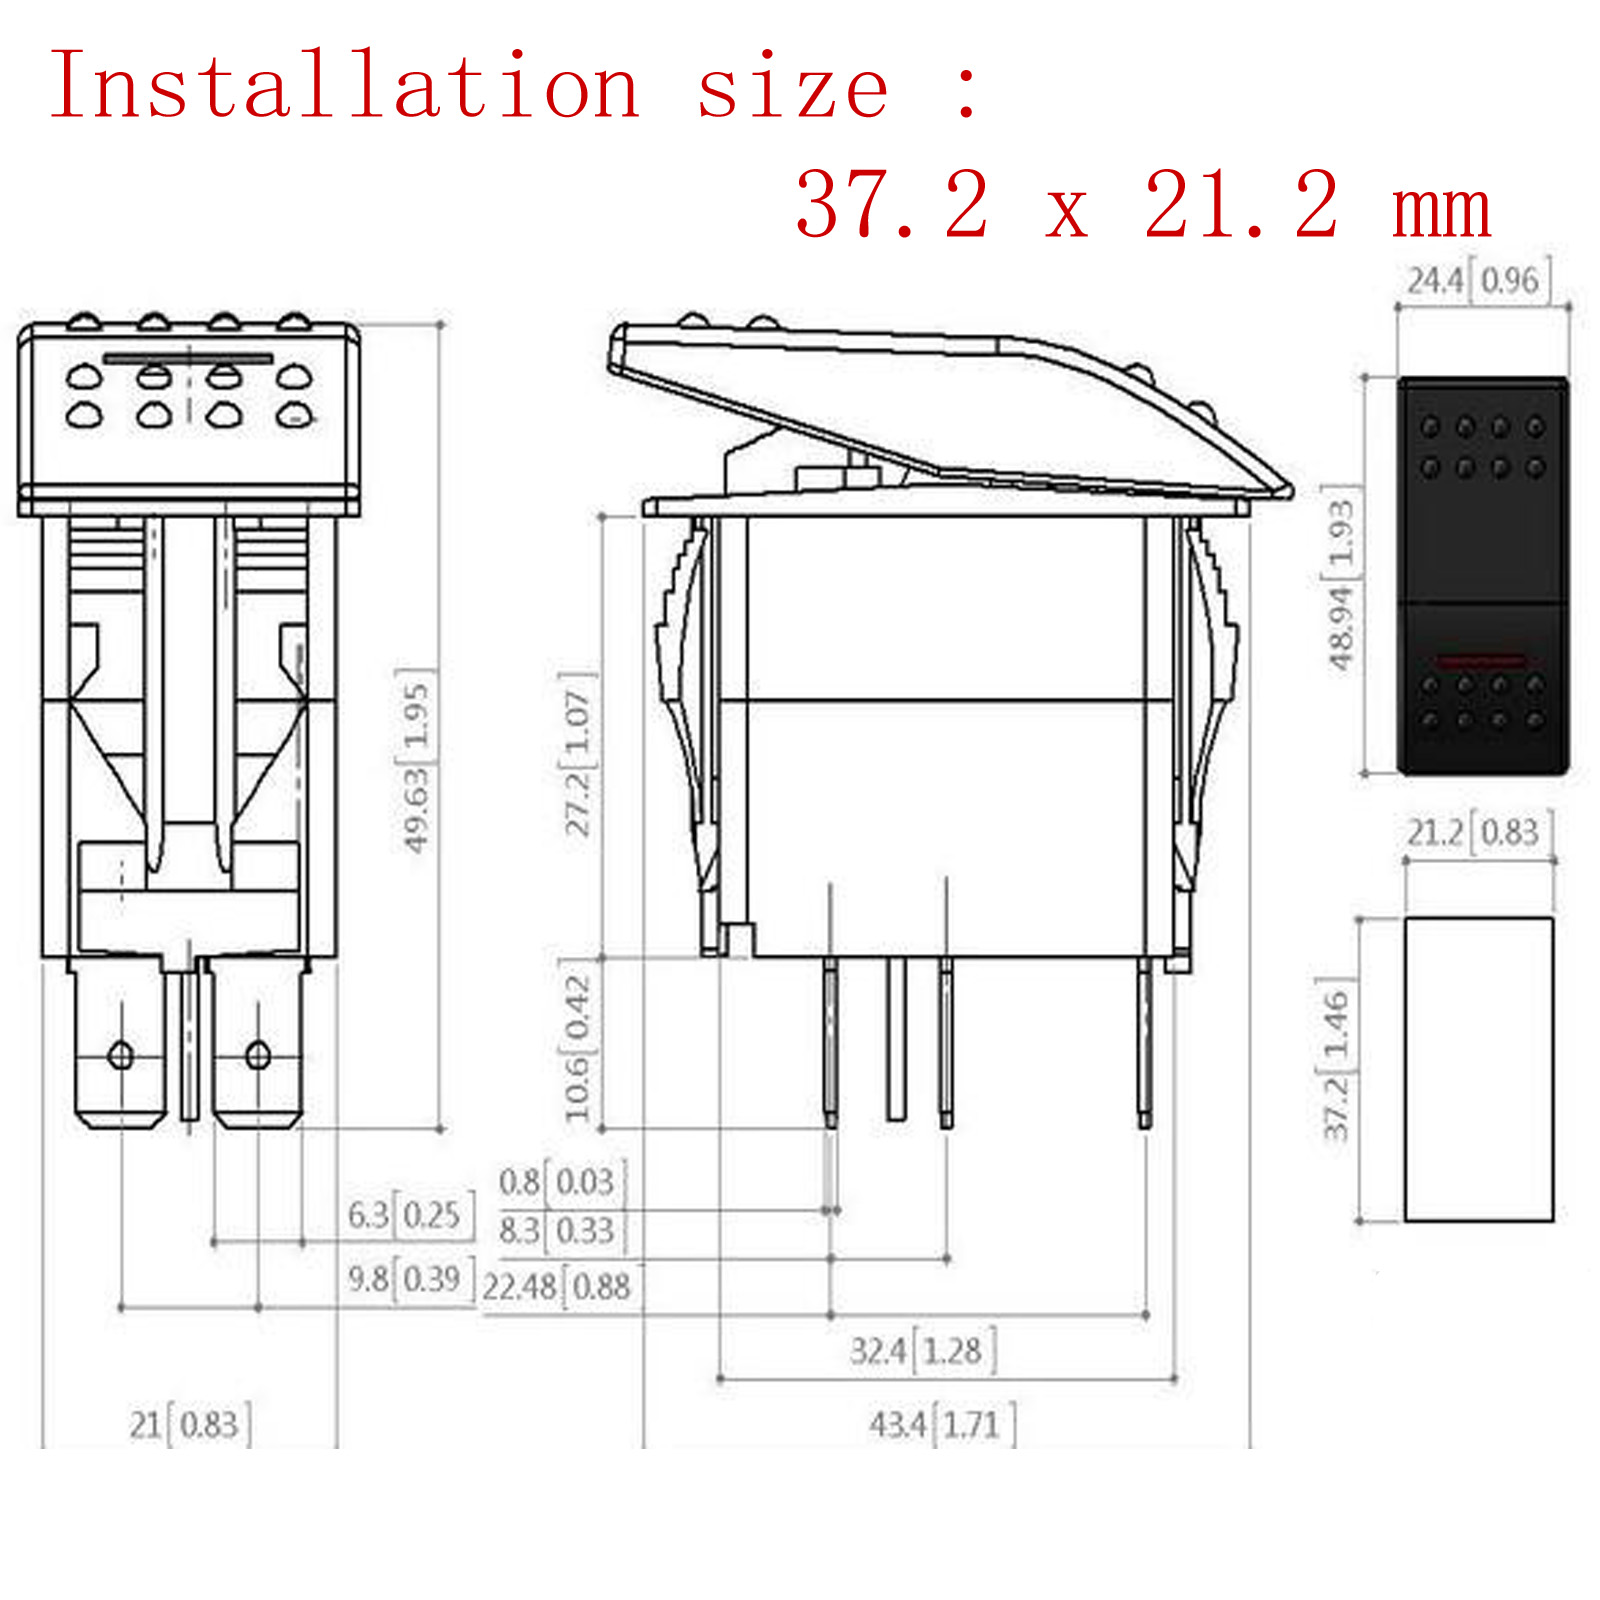 LED SWITCH INSTALLING SIZE on light switch piping diagram, light switch installation, light switch power diagram, light switch cabinet, wall light switch diagram, electrical outlets diagram, light switch timer, light switch with receptacle, dimmer switch installation diagram, light switch cover, circuit diagram,